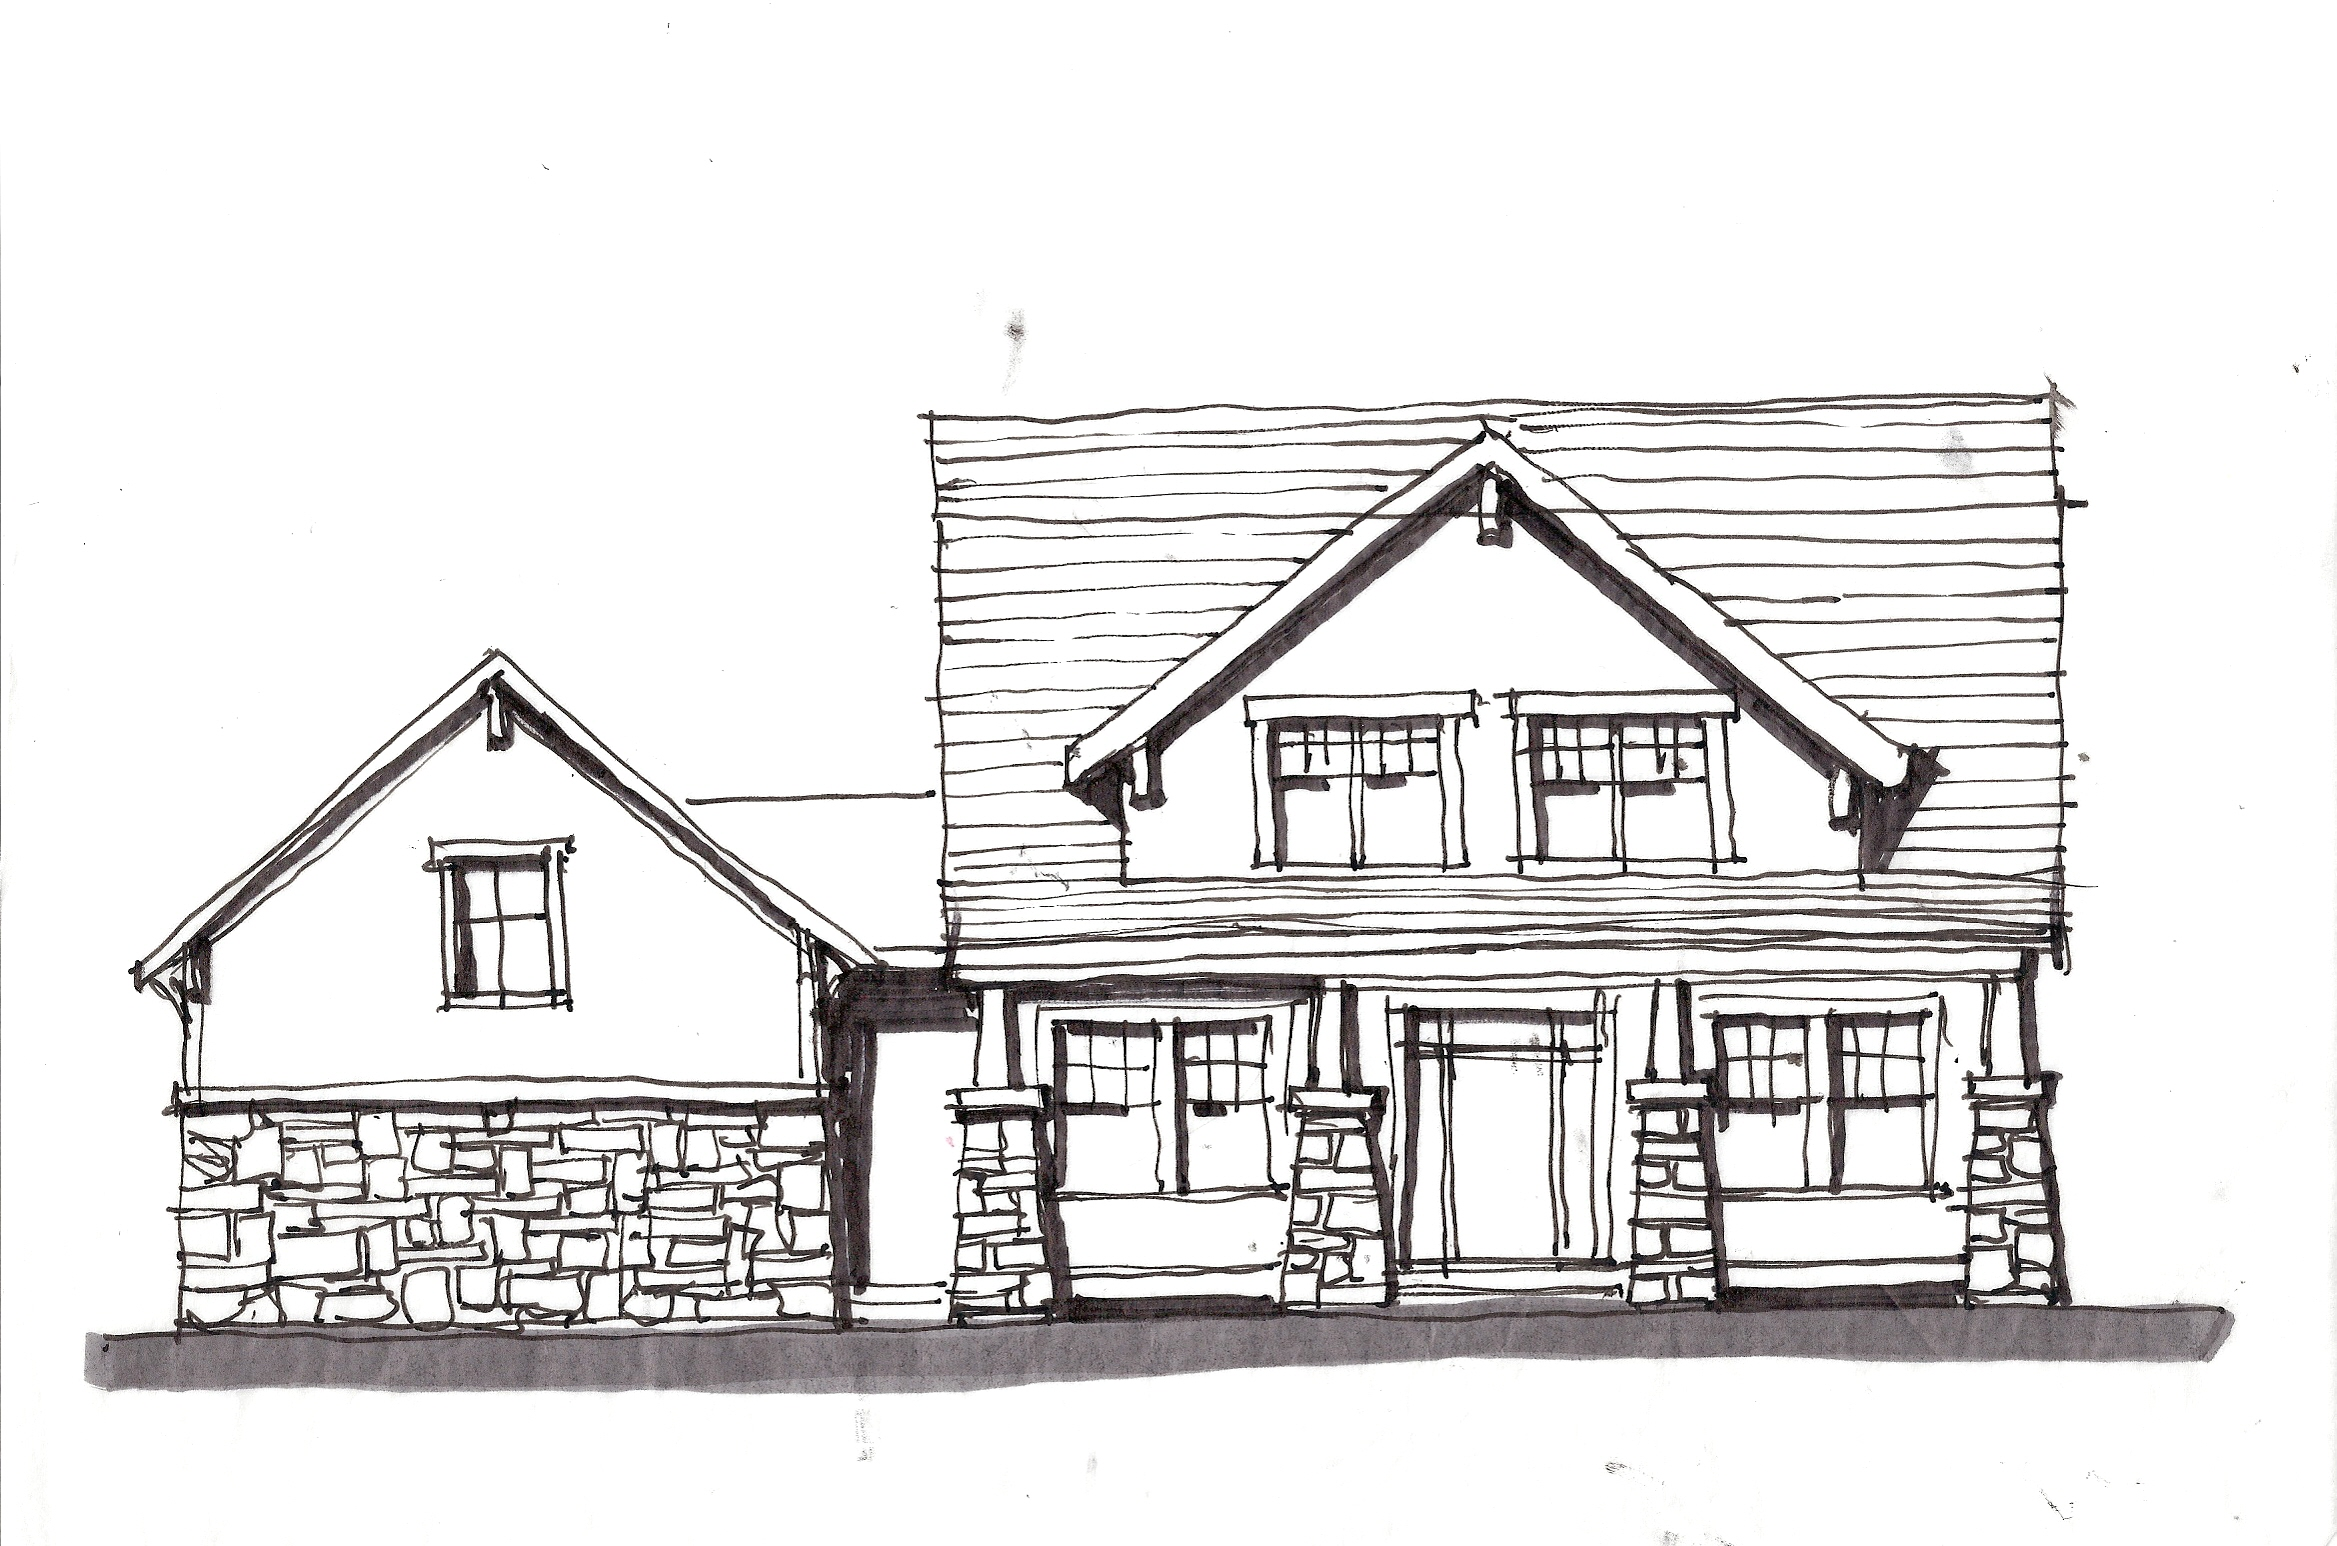 Design sketches for House sketches from photos